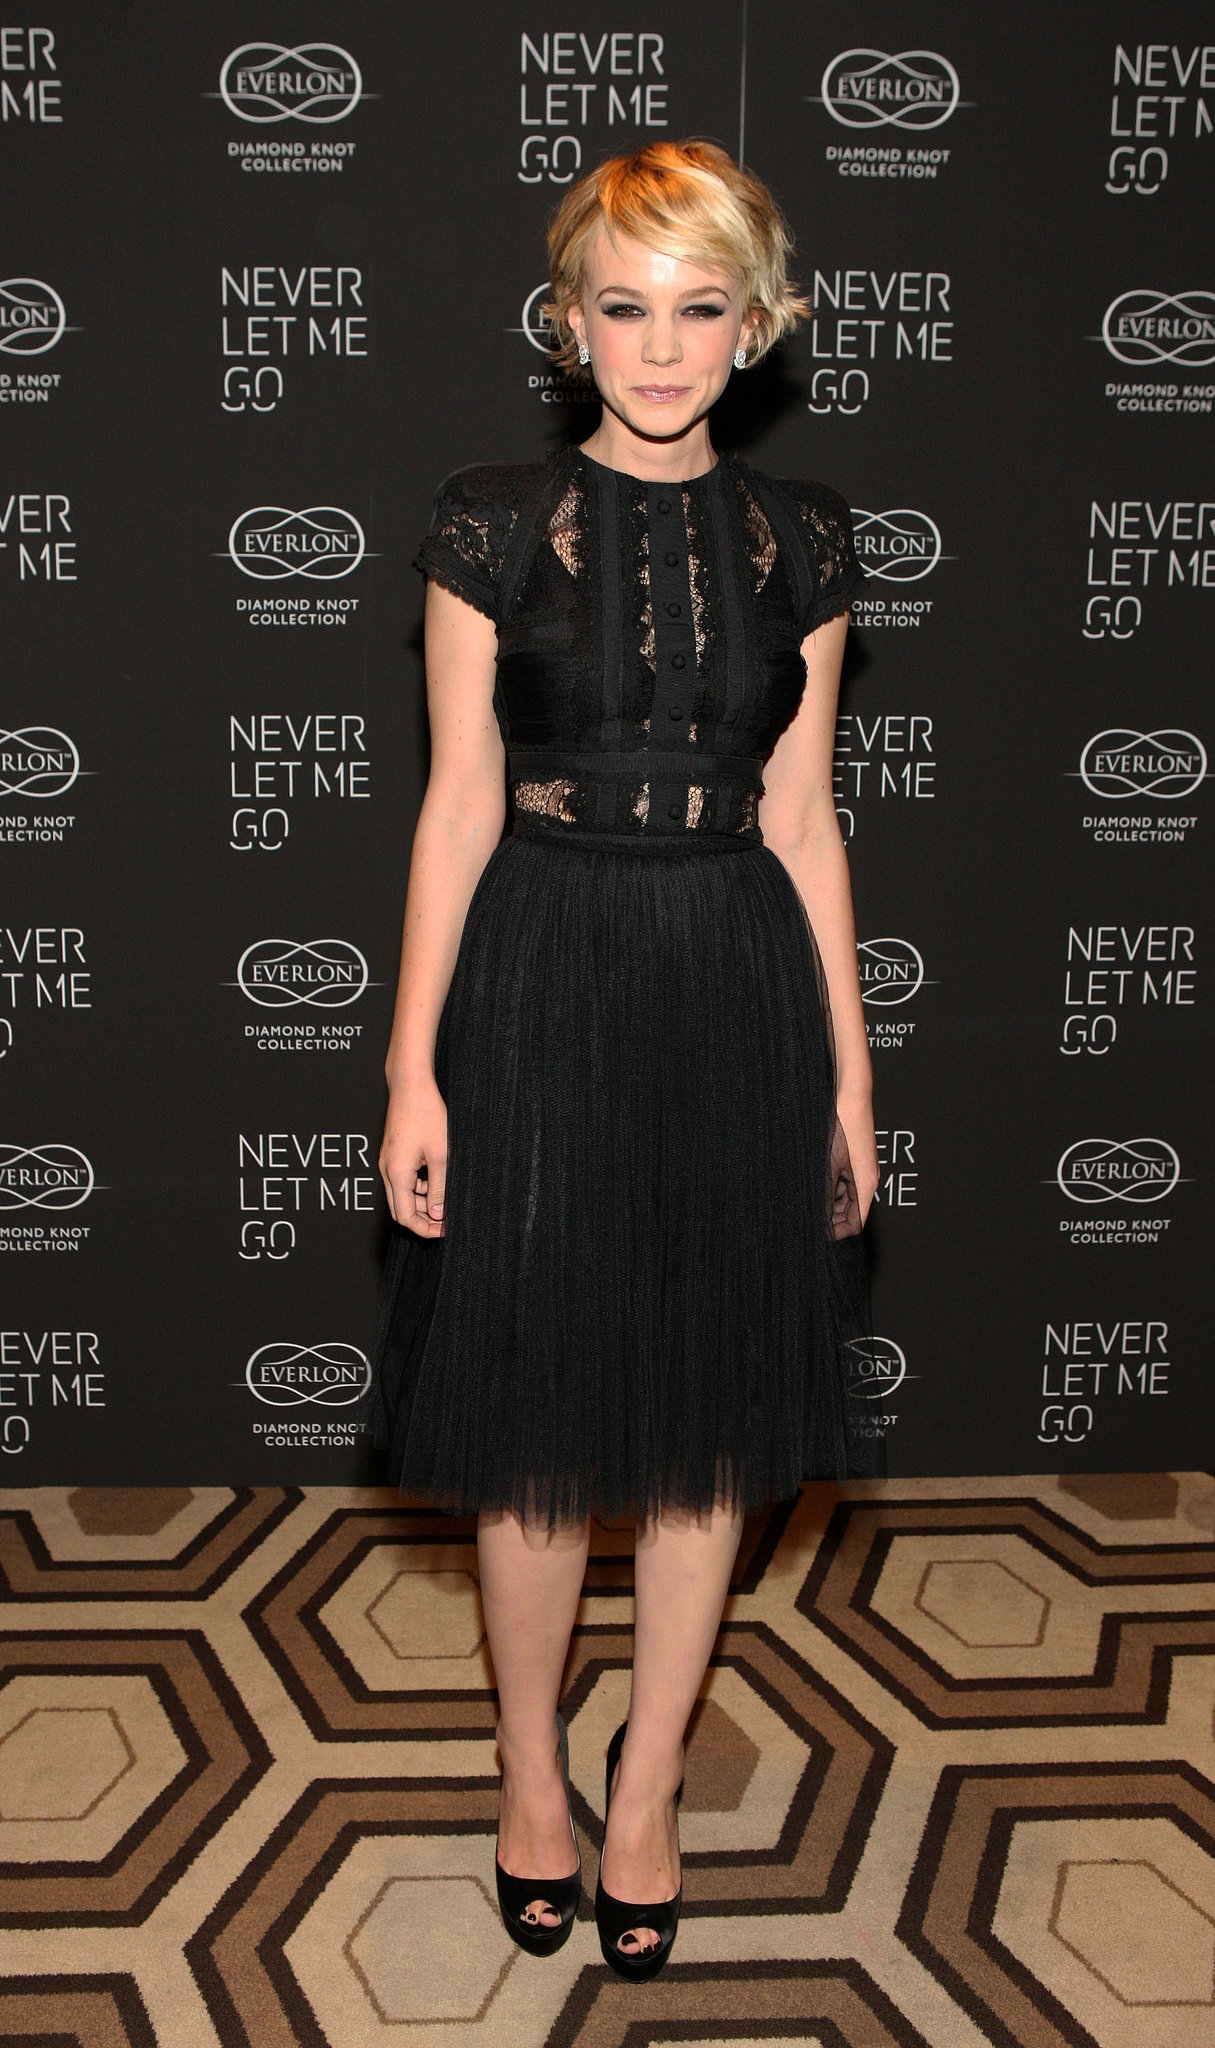 Carey Mulligan in Lace Elie Saab at the 2010 Never Let Me Go NYC Premiere